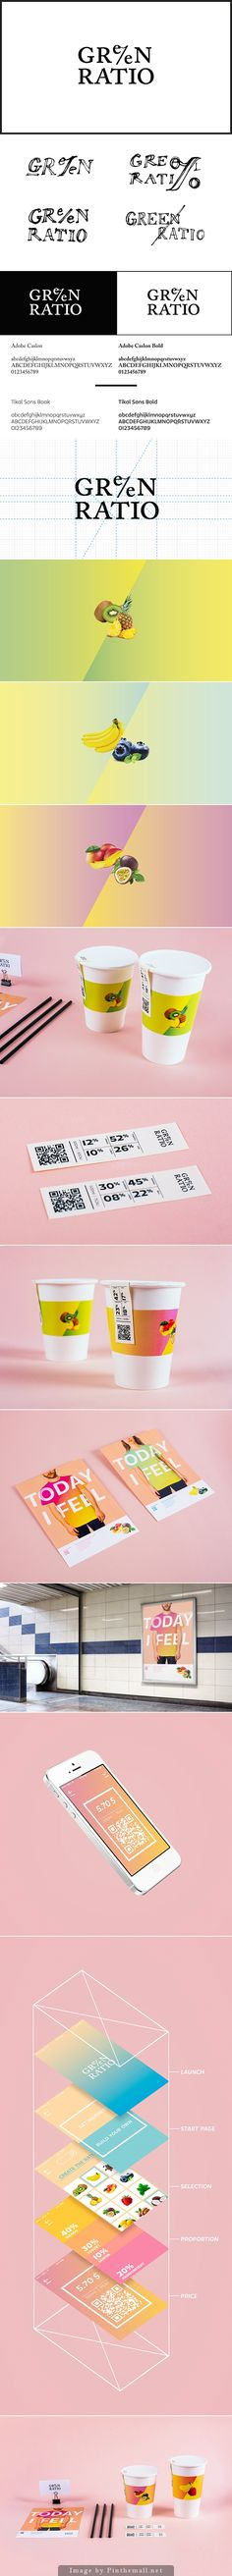 Proportion and relation between the ingredients.  The label represents the two main ingredients in the smoothie creating an interesting #packaging design concept. Curated by Packaging Diva PD created  (Ingredients Design Behance)